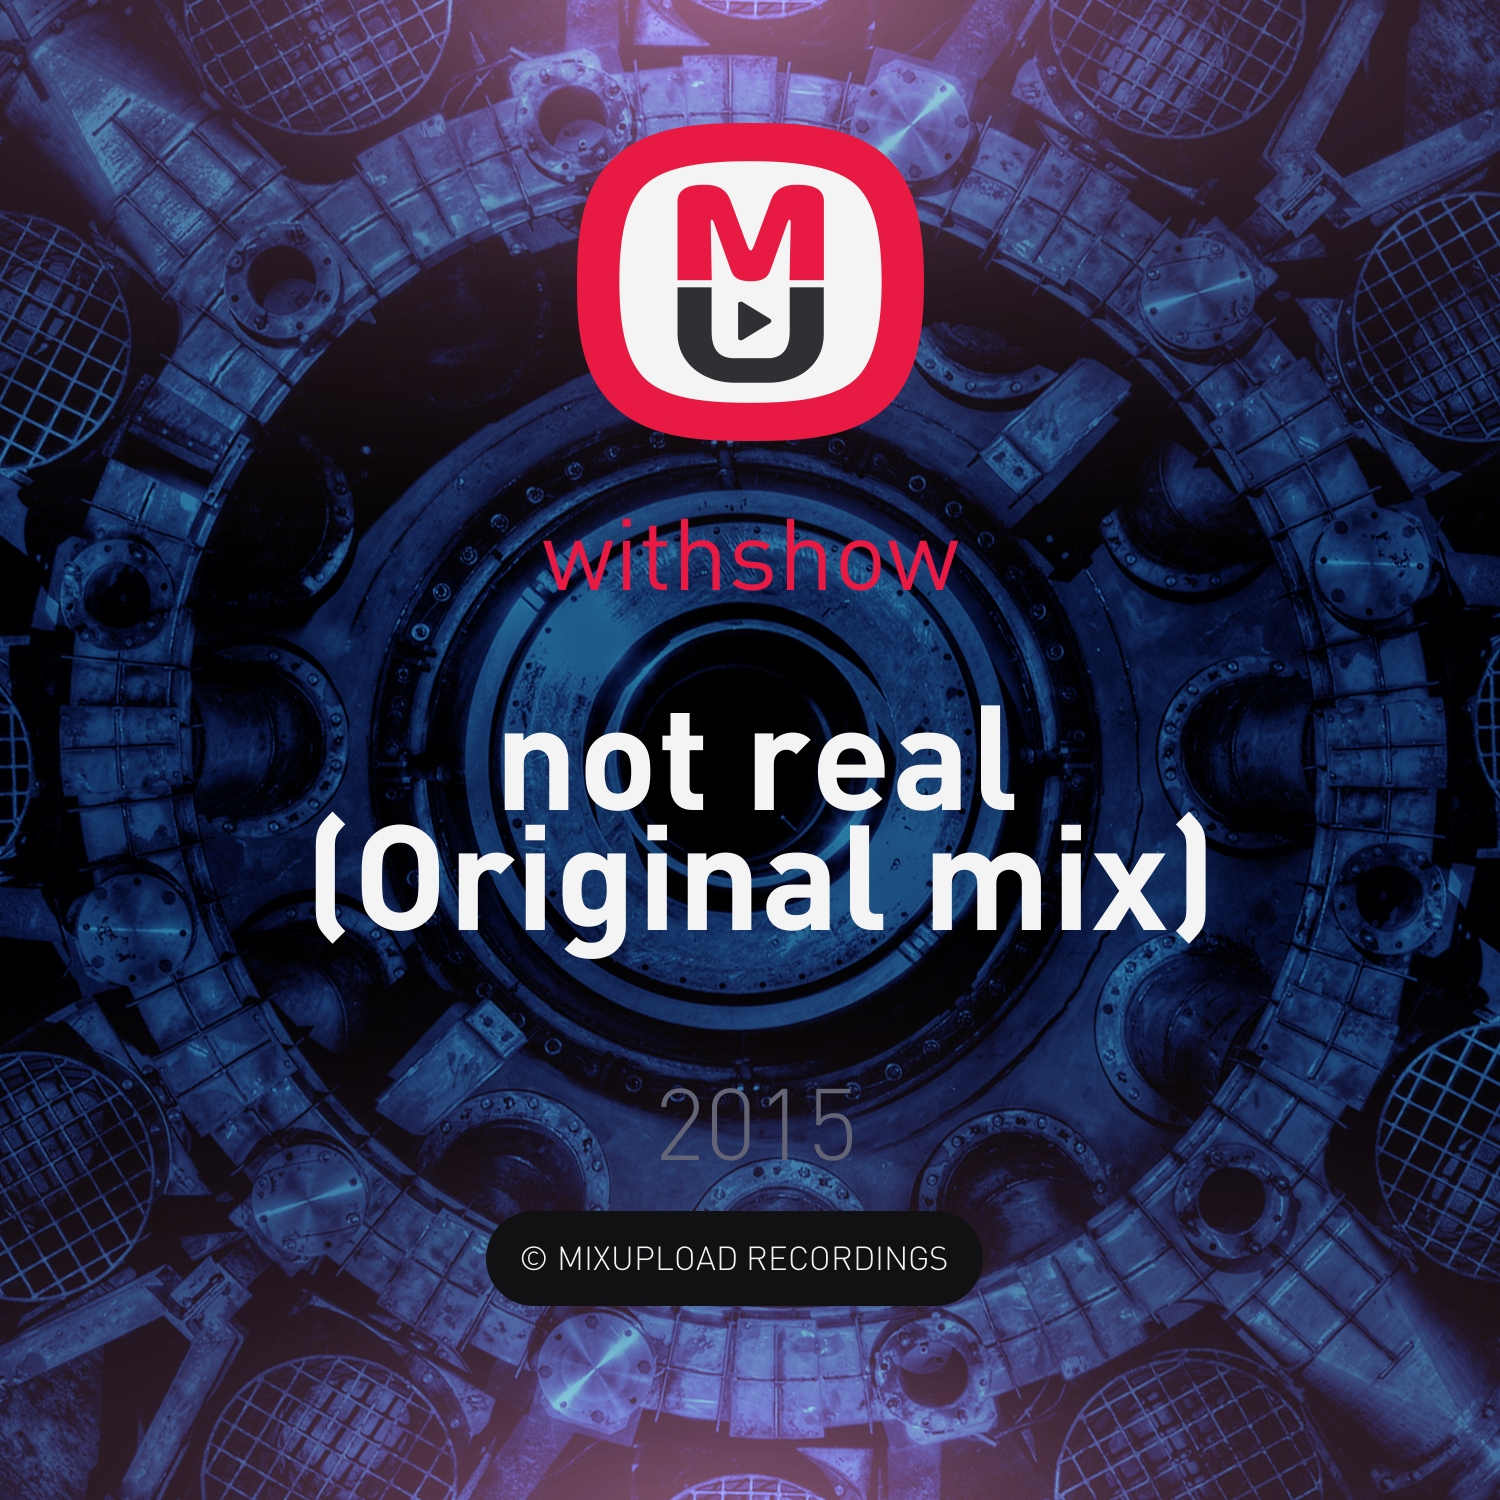 withshow - not real (Original mix)